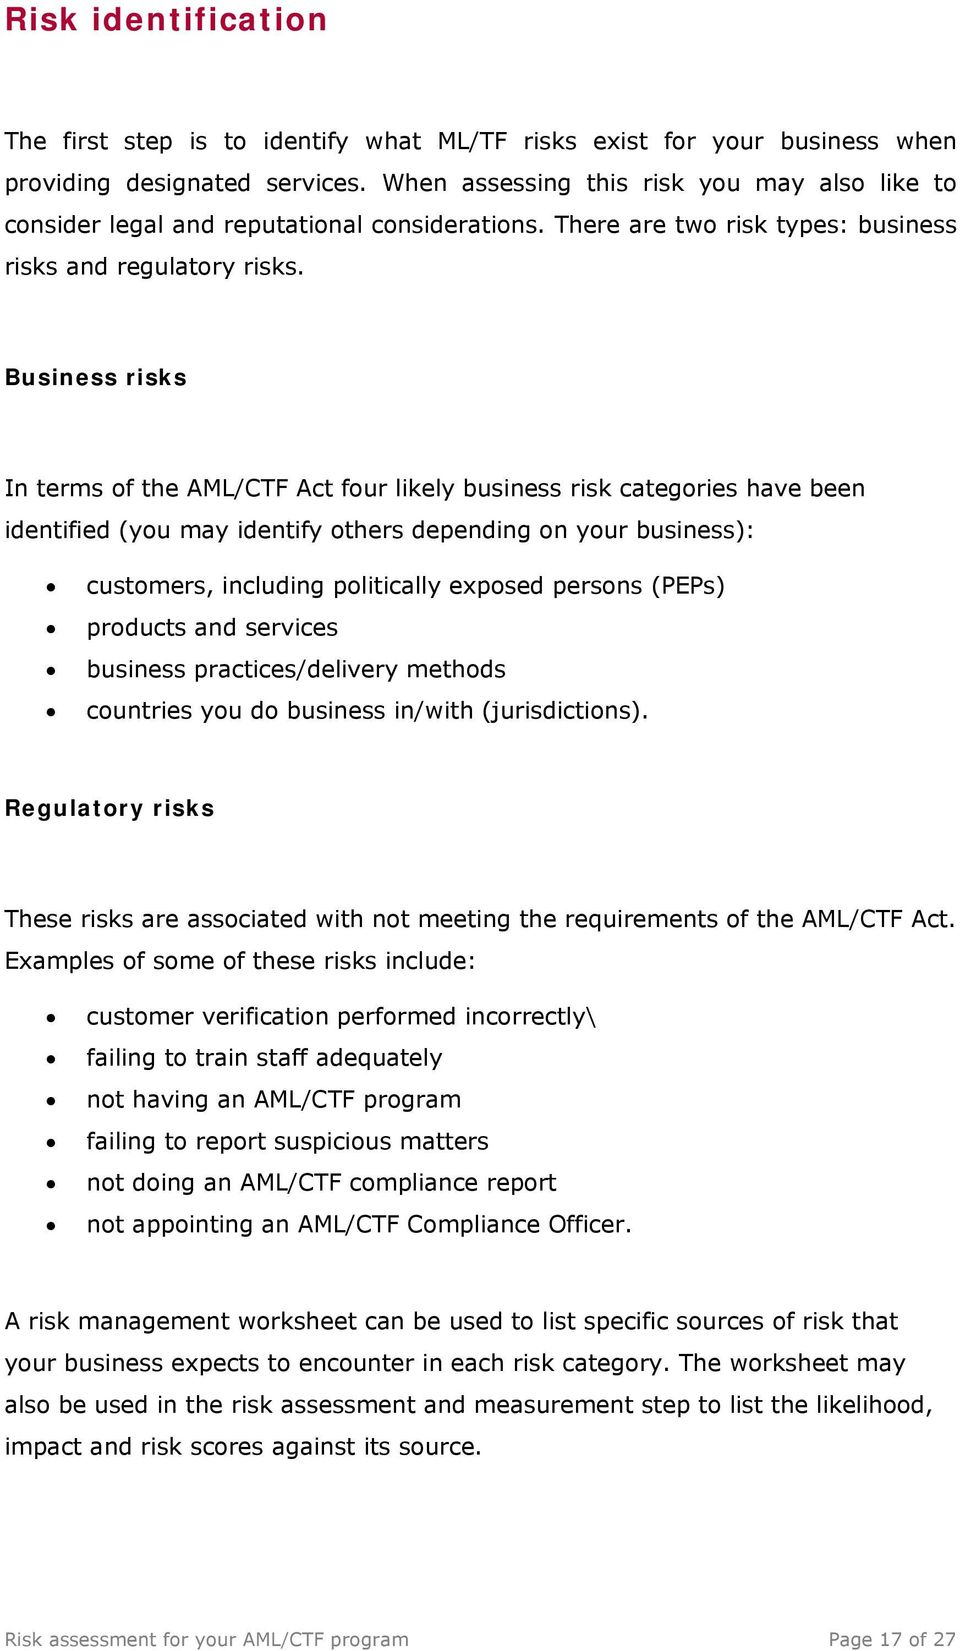 Business risks In terms of the AML/CTF Act four likely business risk categories have been identified (you may identify others depending on your business): customers, including politically exposed